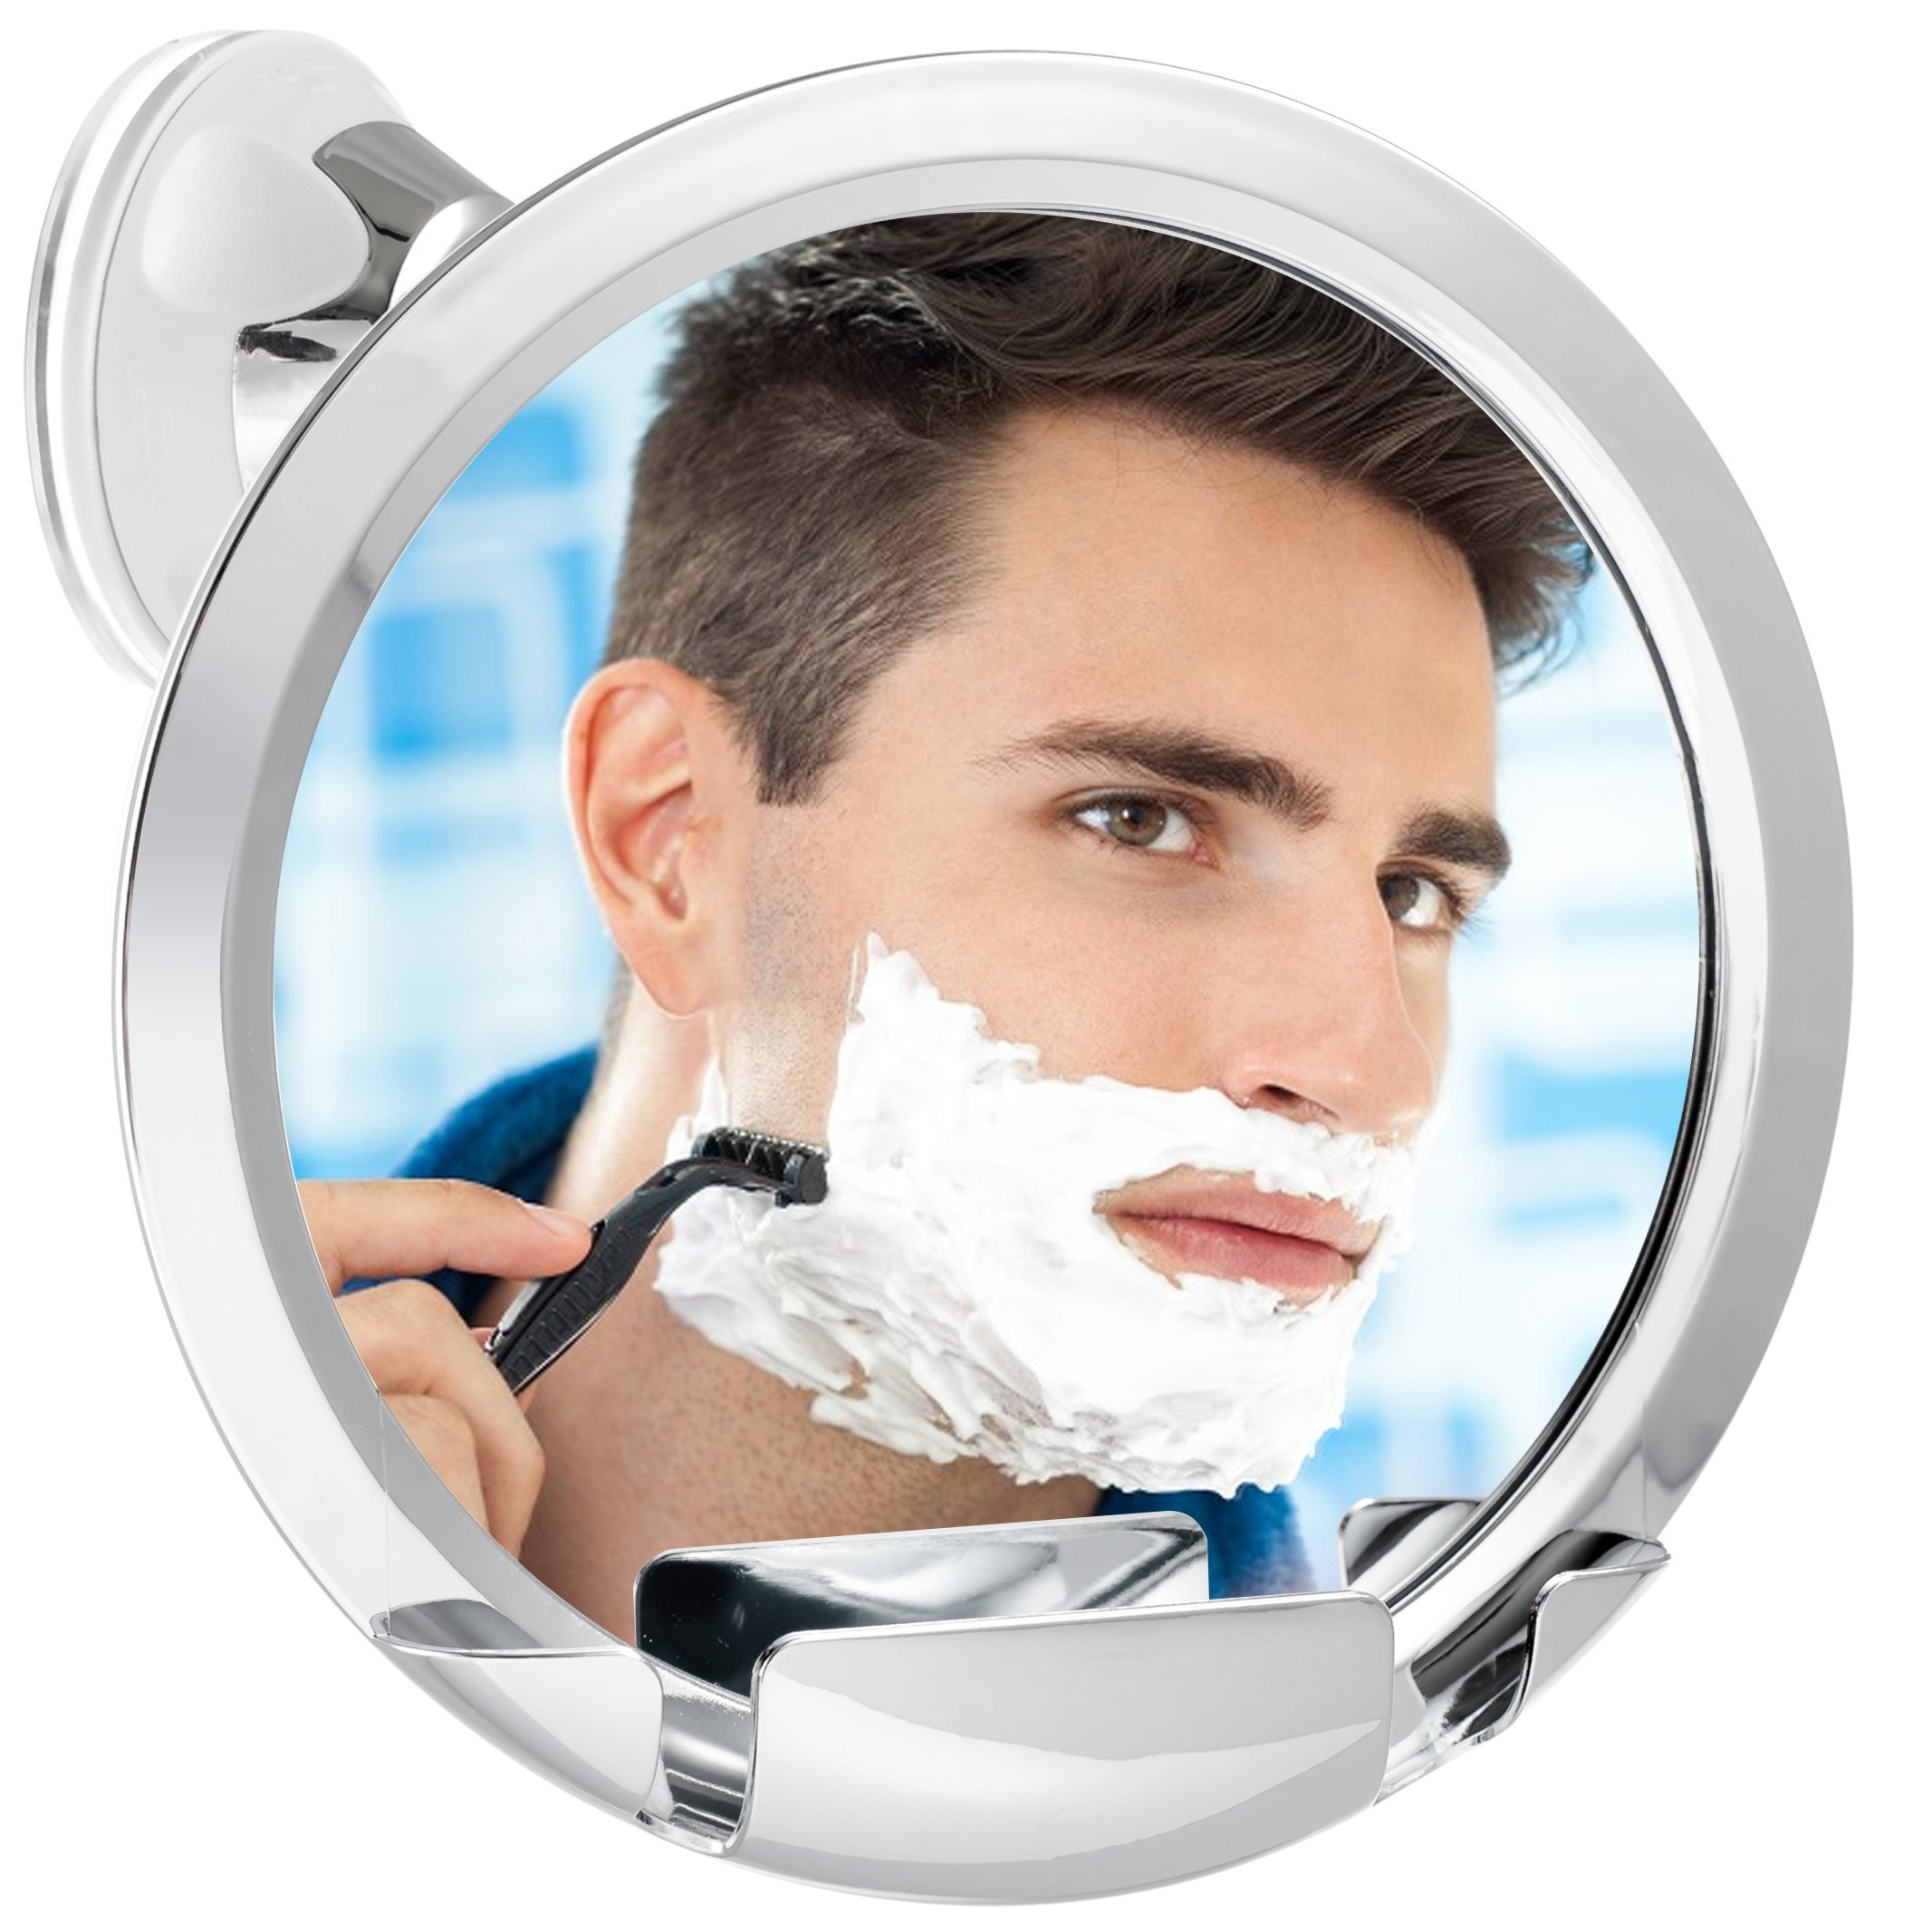 Fogless Shower Mirror with Built-In Razor Holder | 360° Rotation | Real Fog-Free Shaving | Adjustable Arm & | Shatterproof & Rust-Resistant | Non-Fogging Bathroom Mirror for Men and Women by Asani